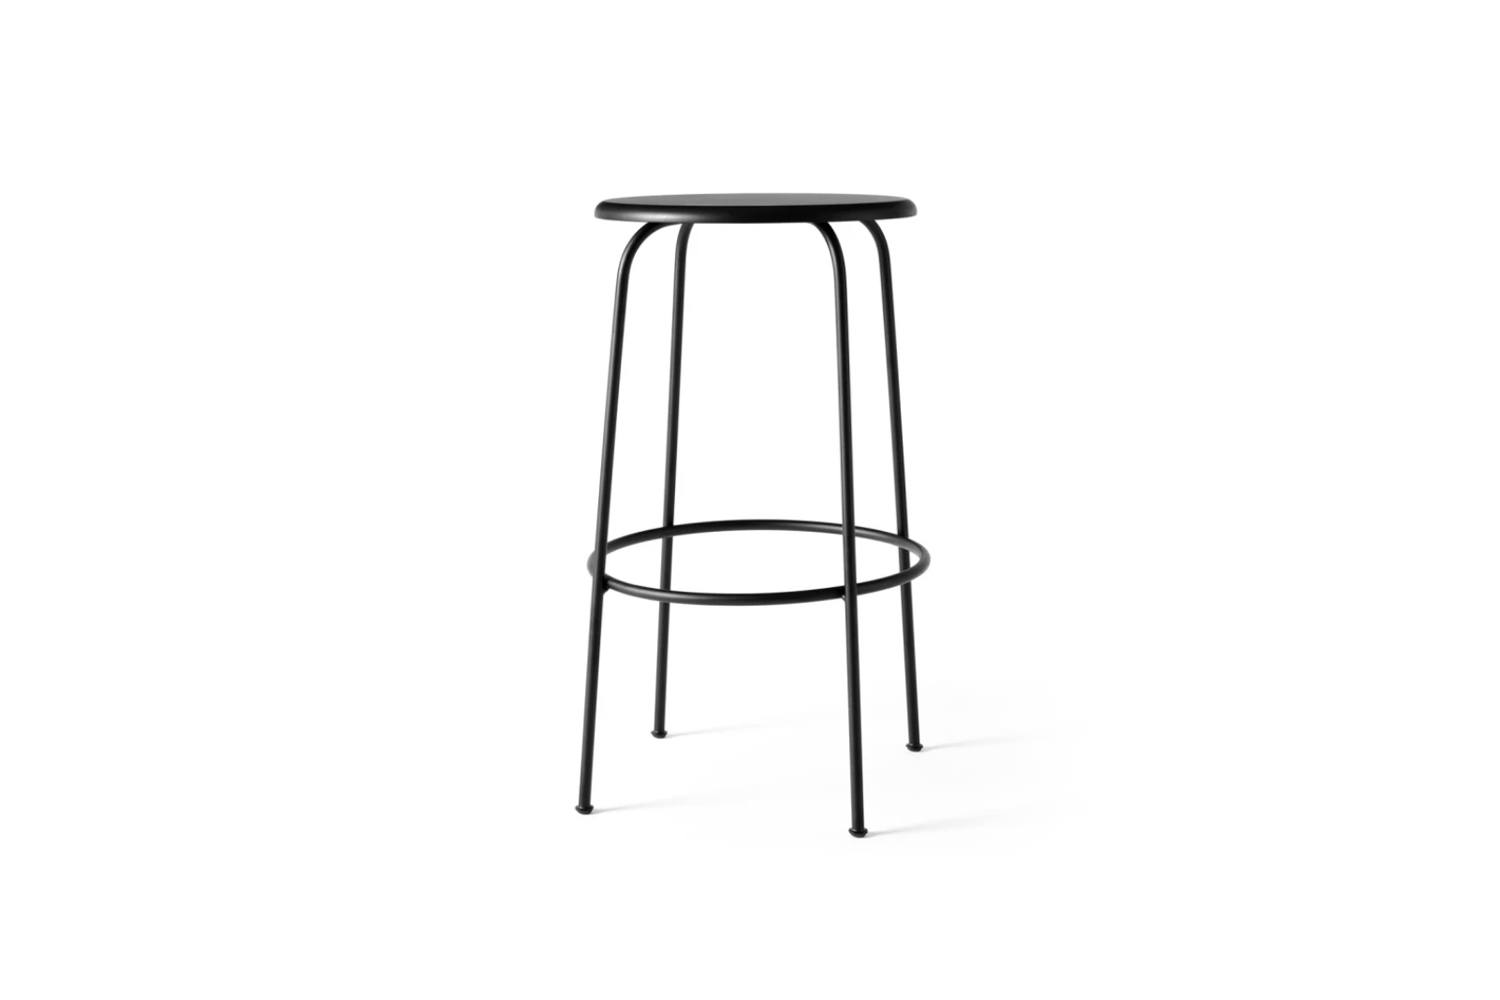 The Menu Afteroom Barstool with Wood Seat is $9.95 at Horne.